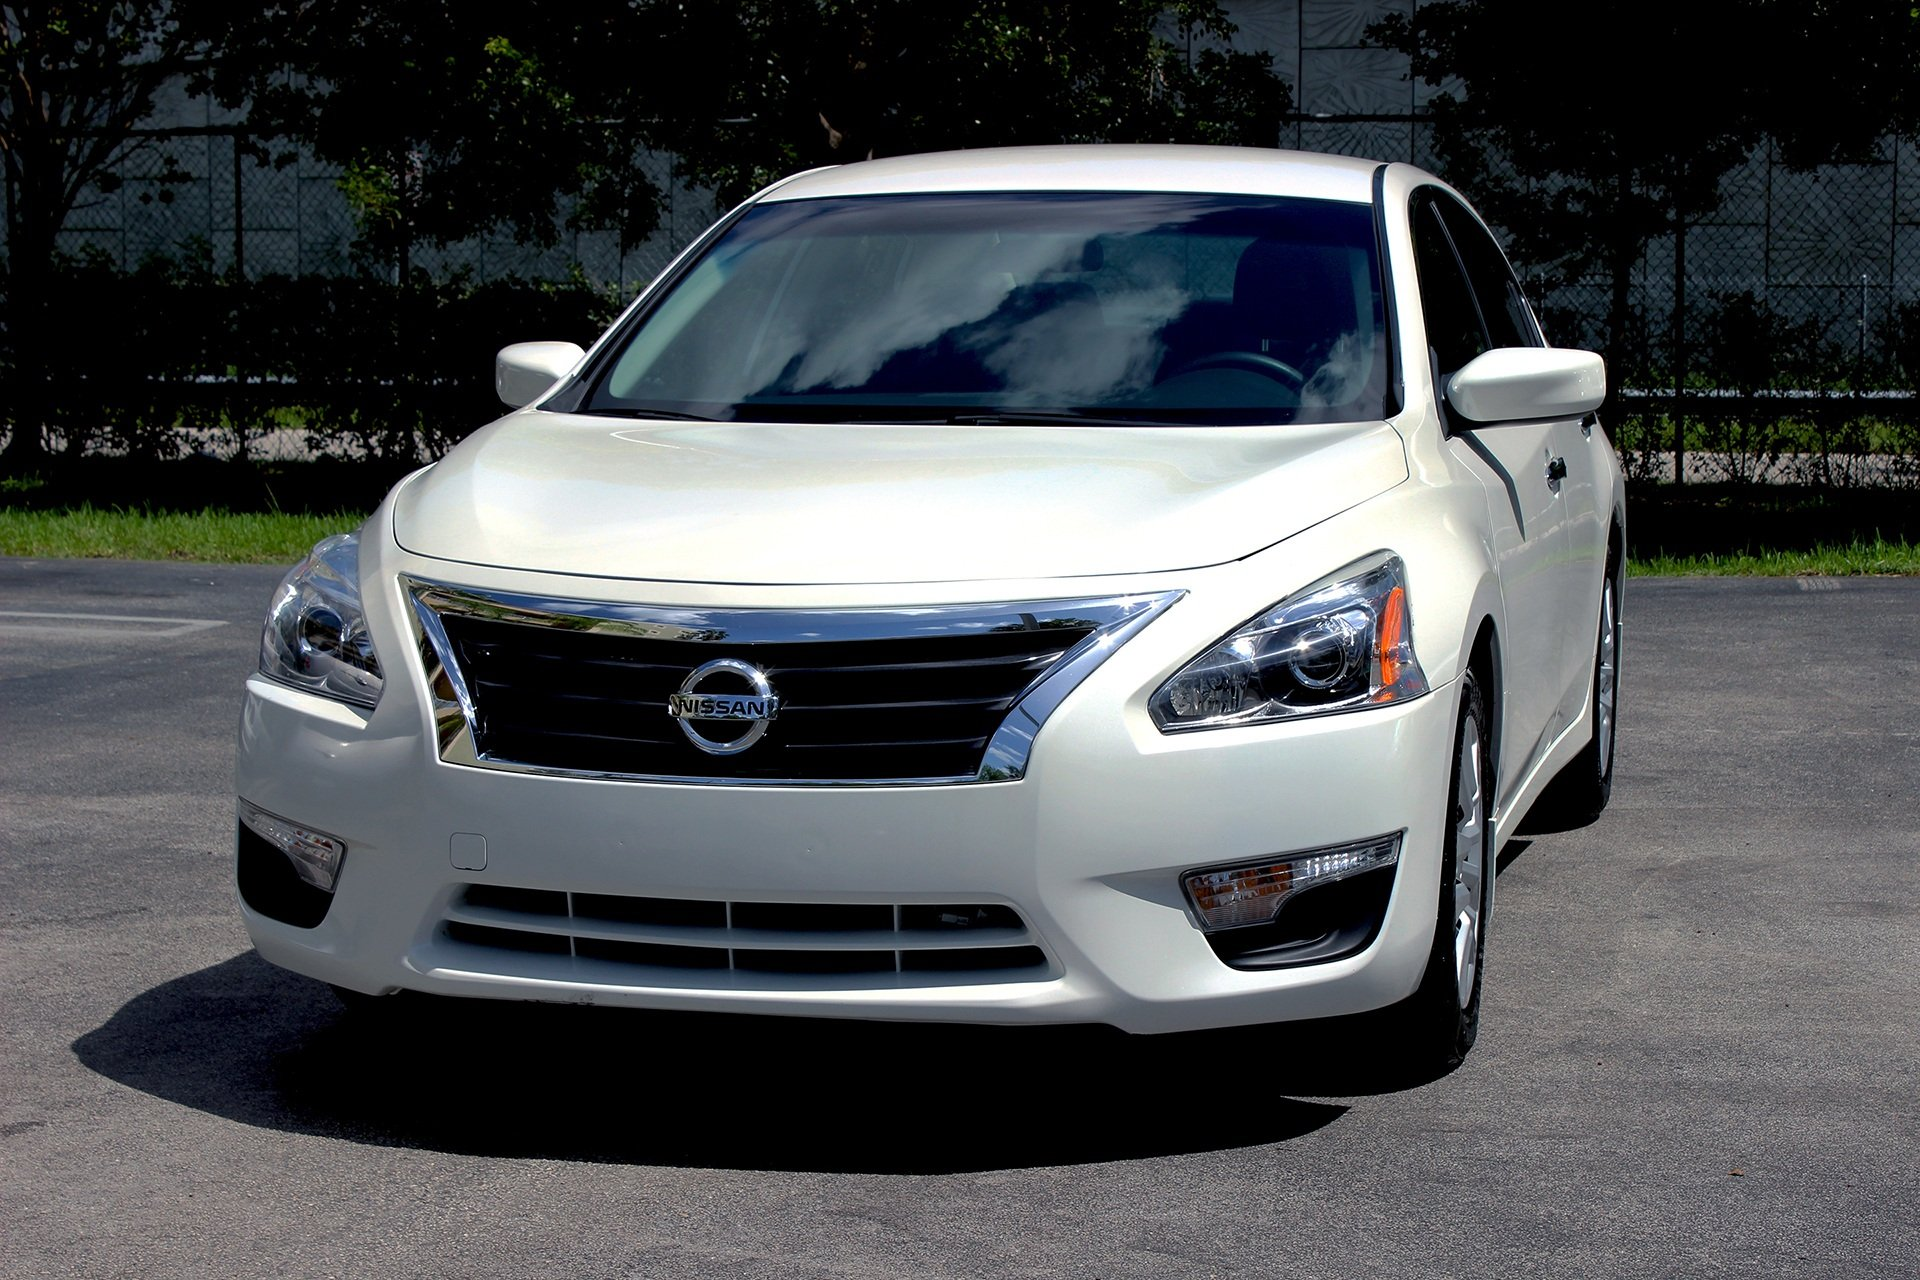 Nissan Sentra Named as a Finalist for North American Car of the Year